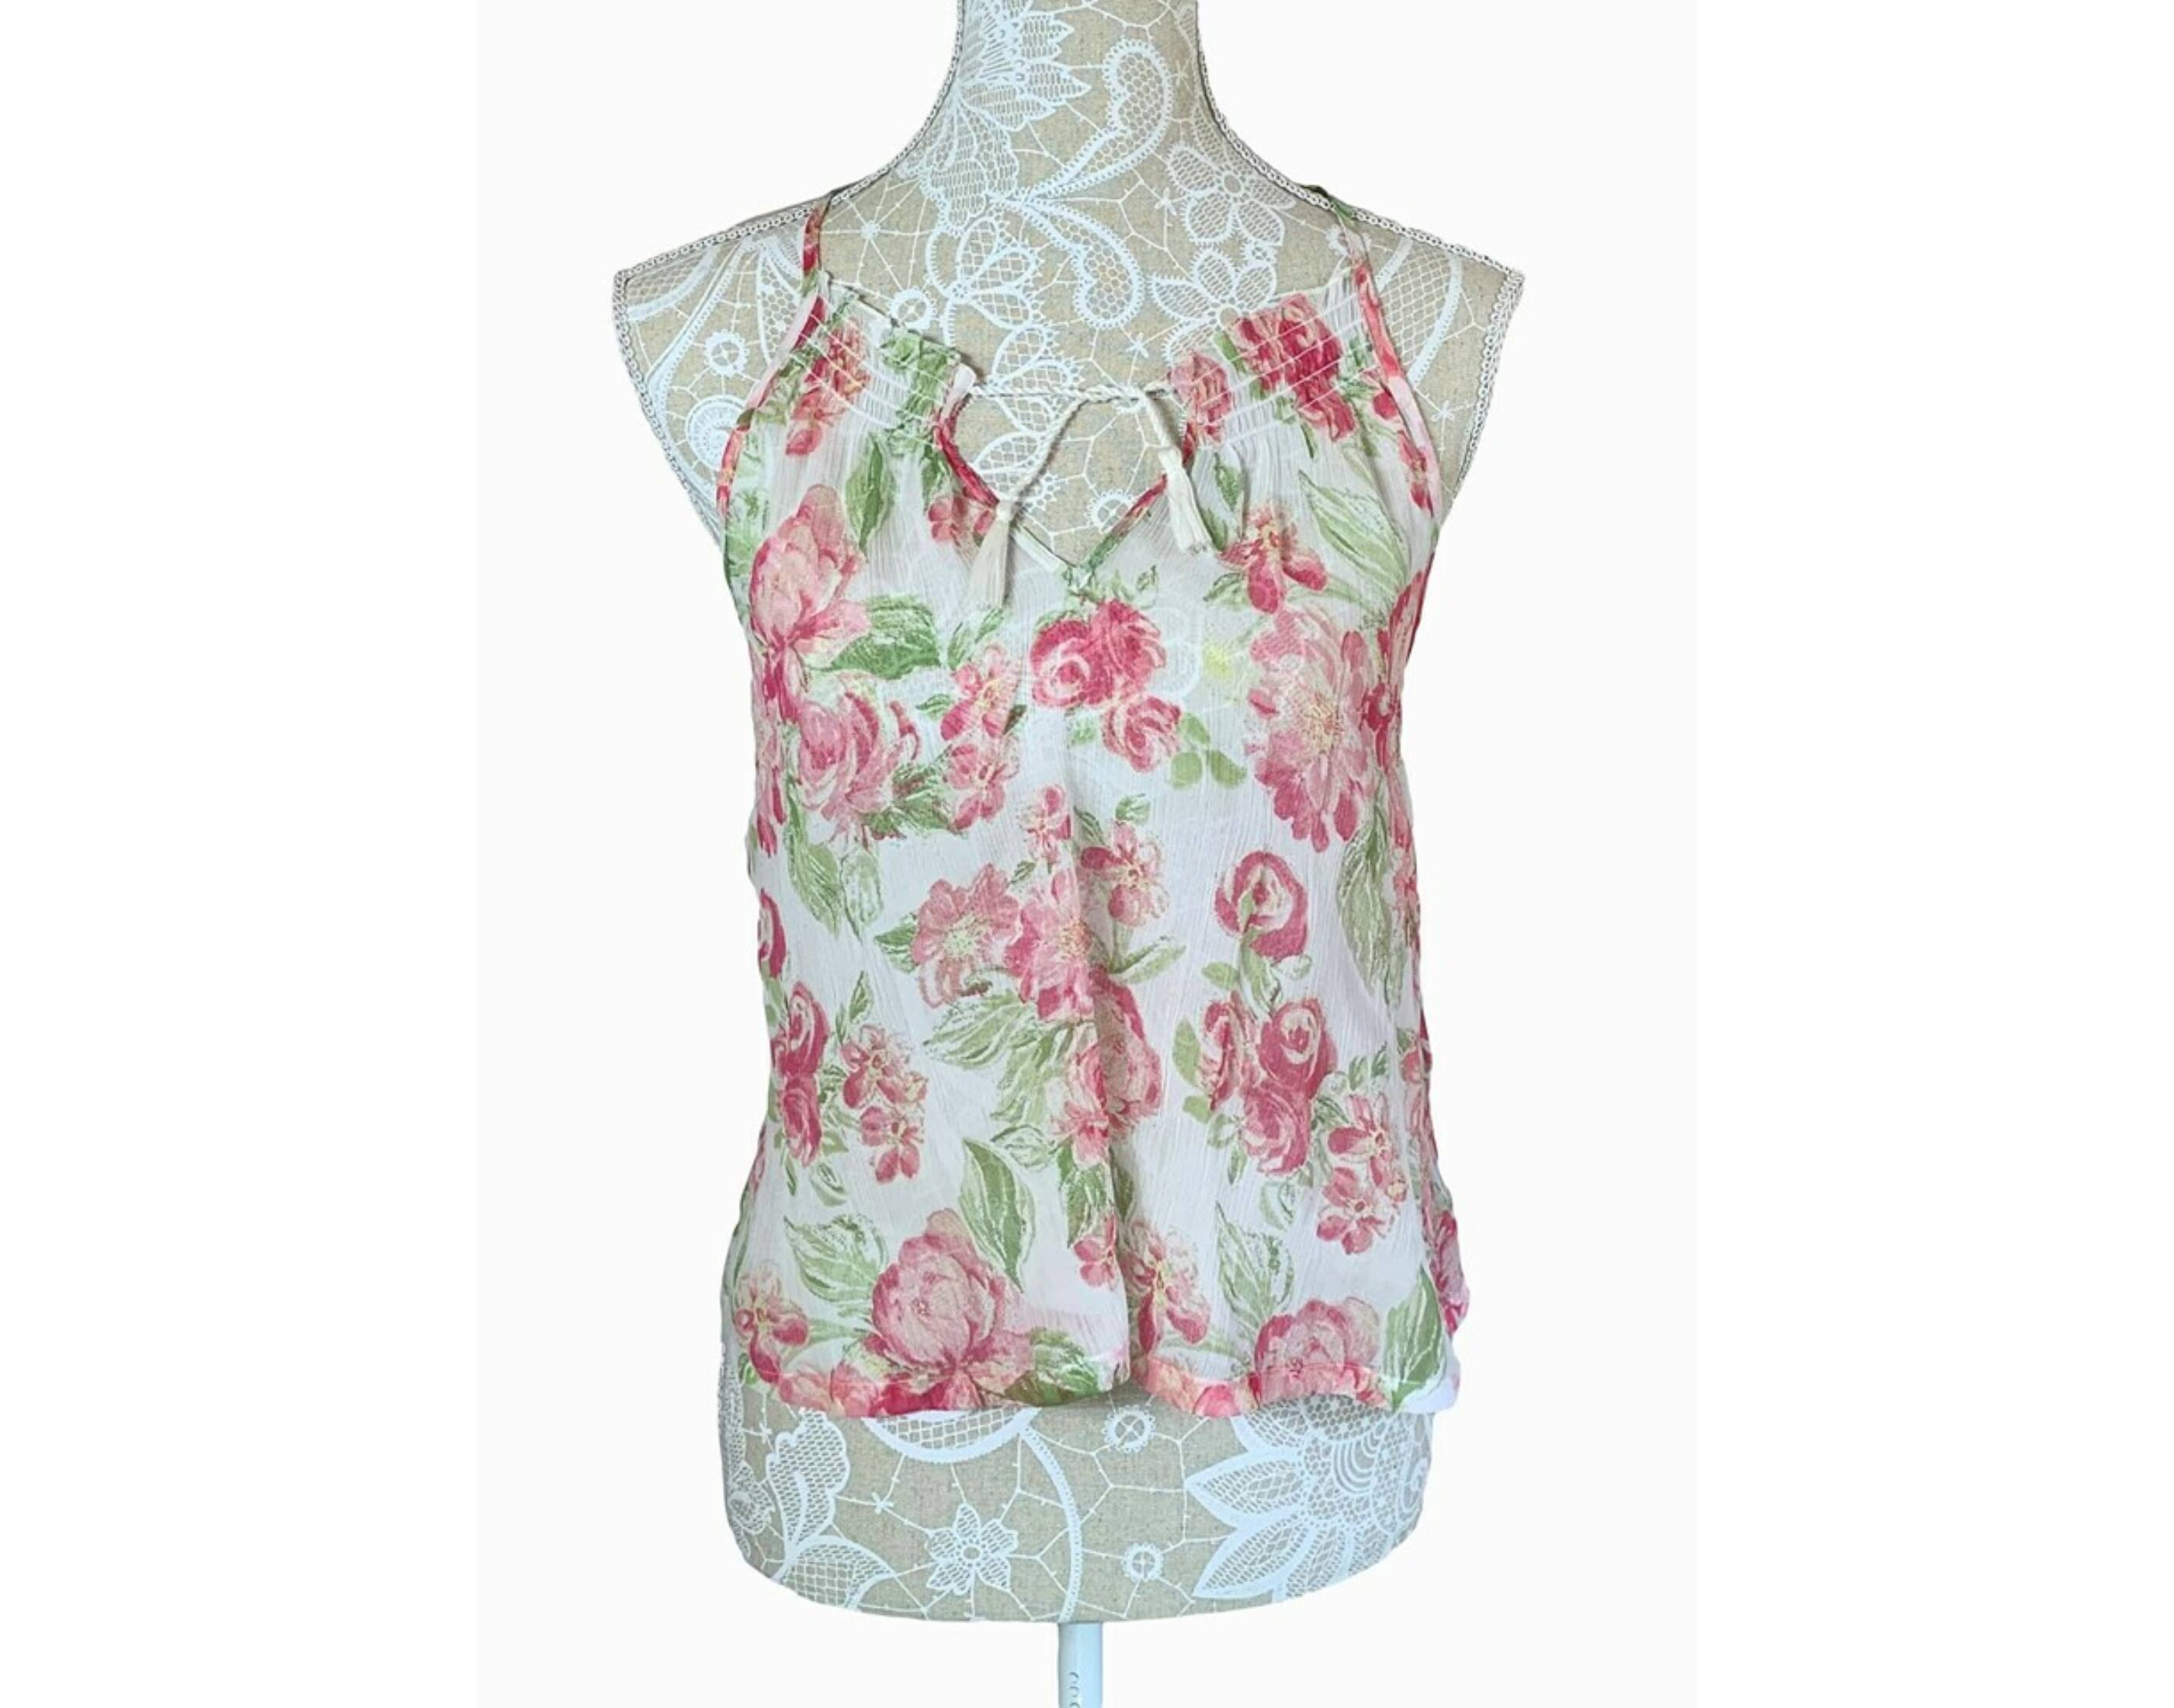 Abercrombie & Fitch top (M)